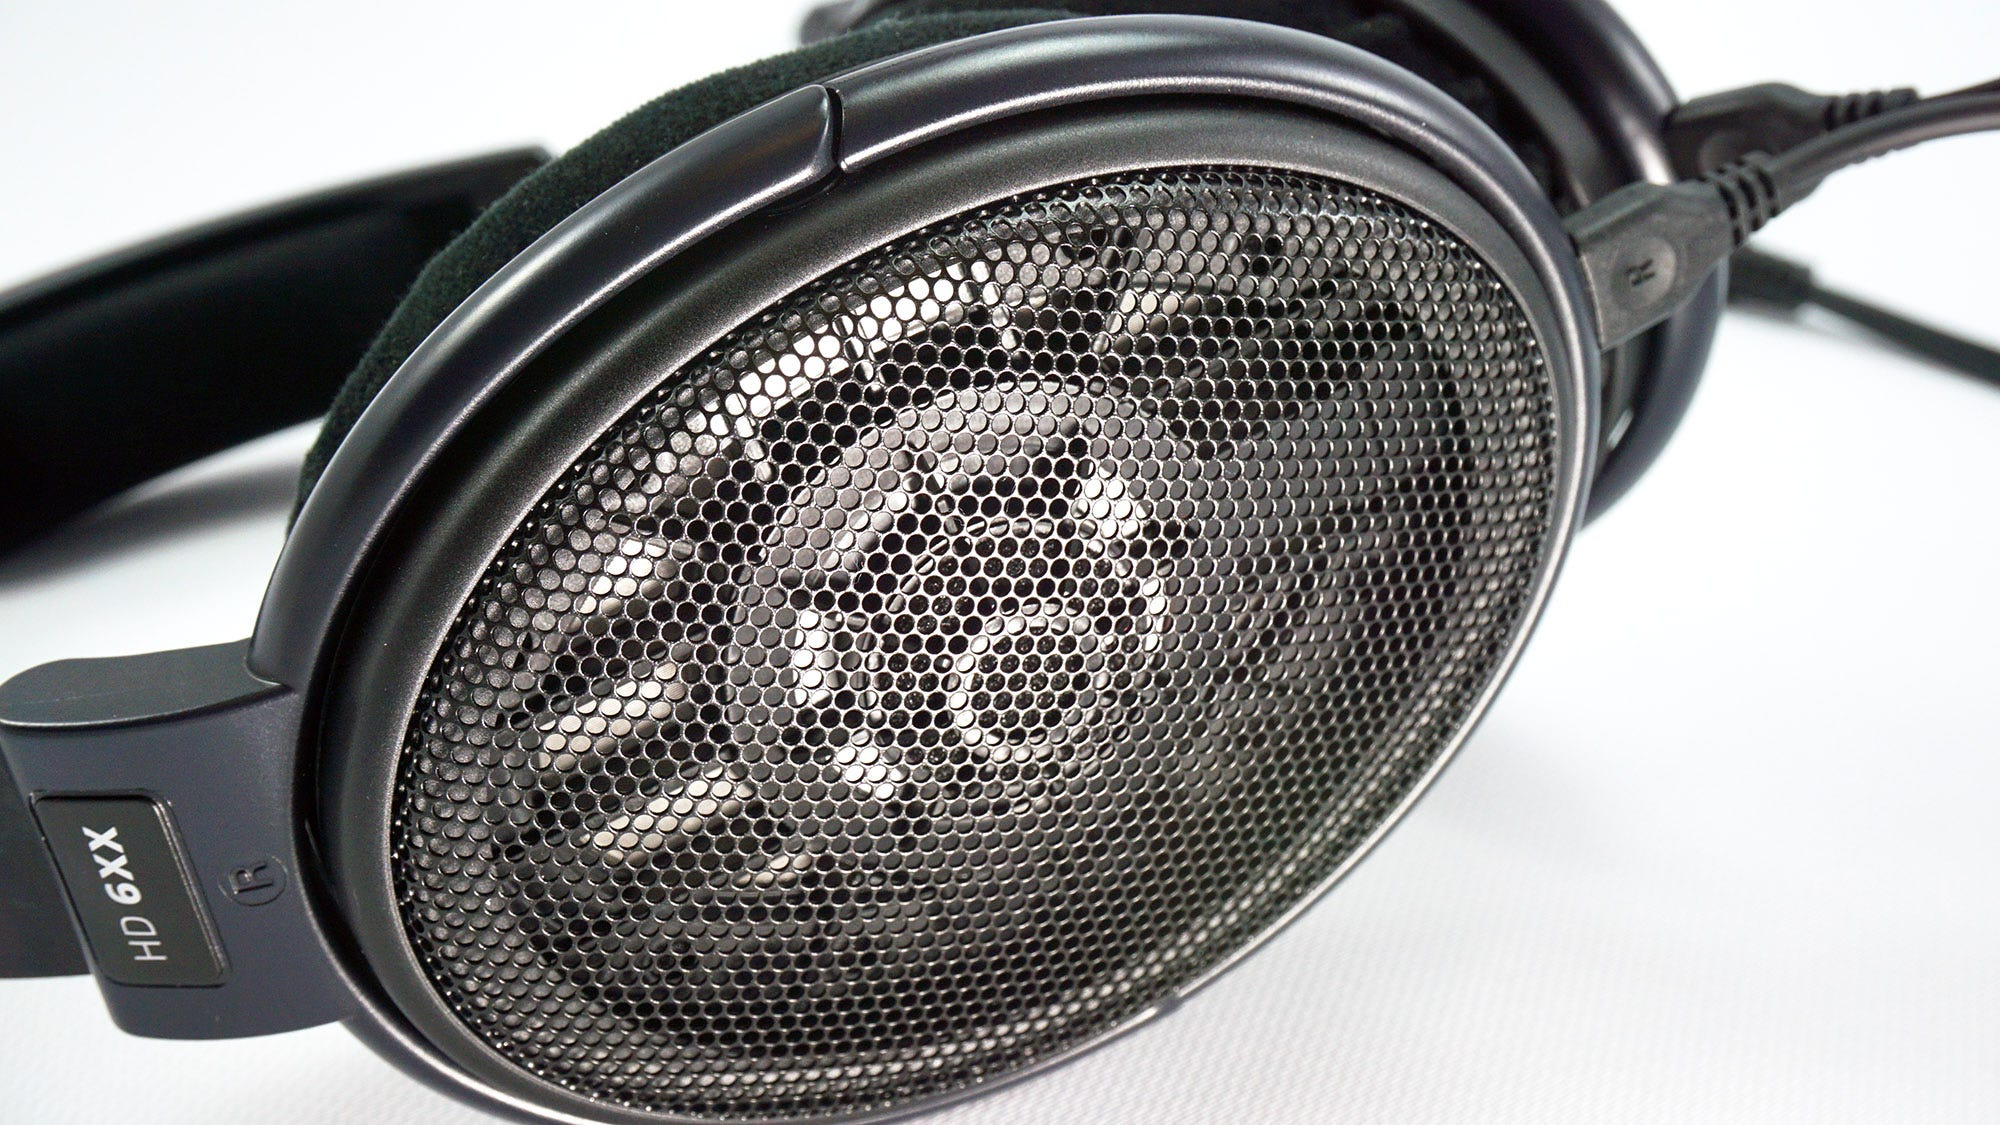 The open back casing on the HD 6XX headphones